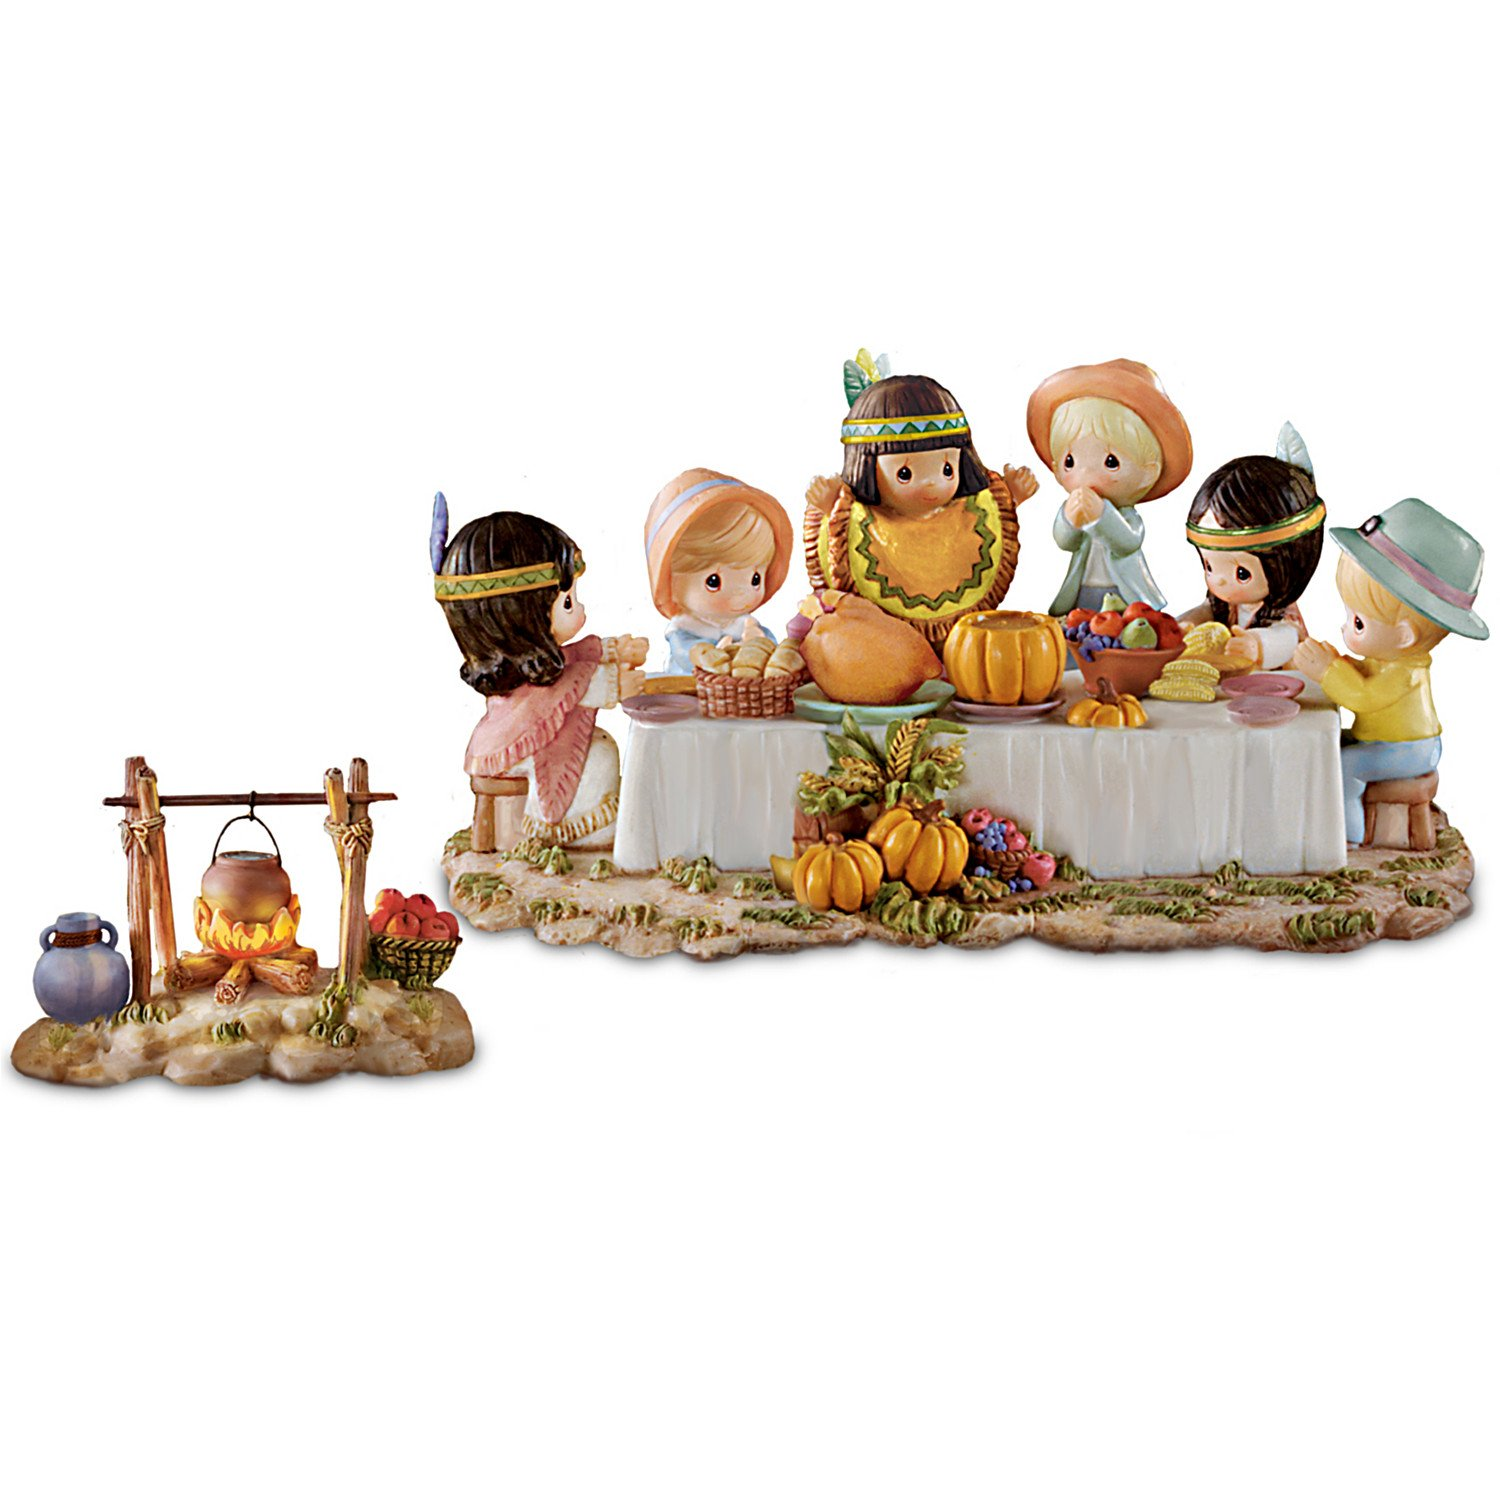 Thanksgiving pilgrim indian children figurines